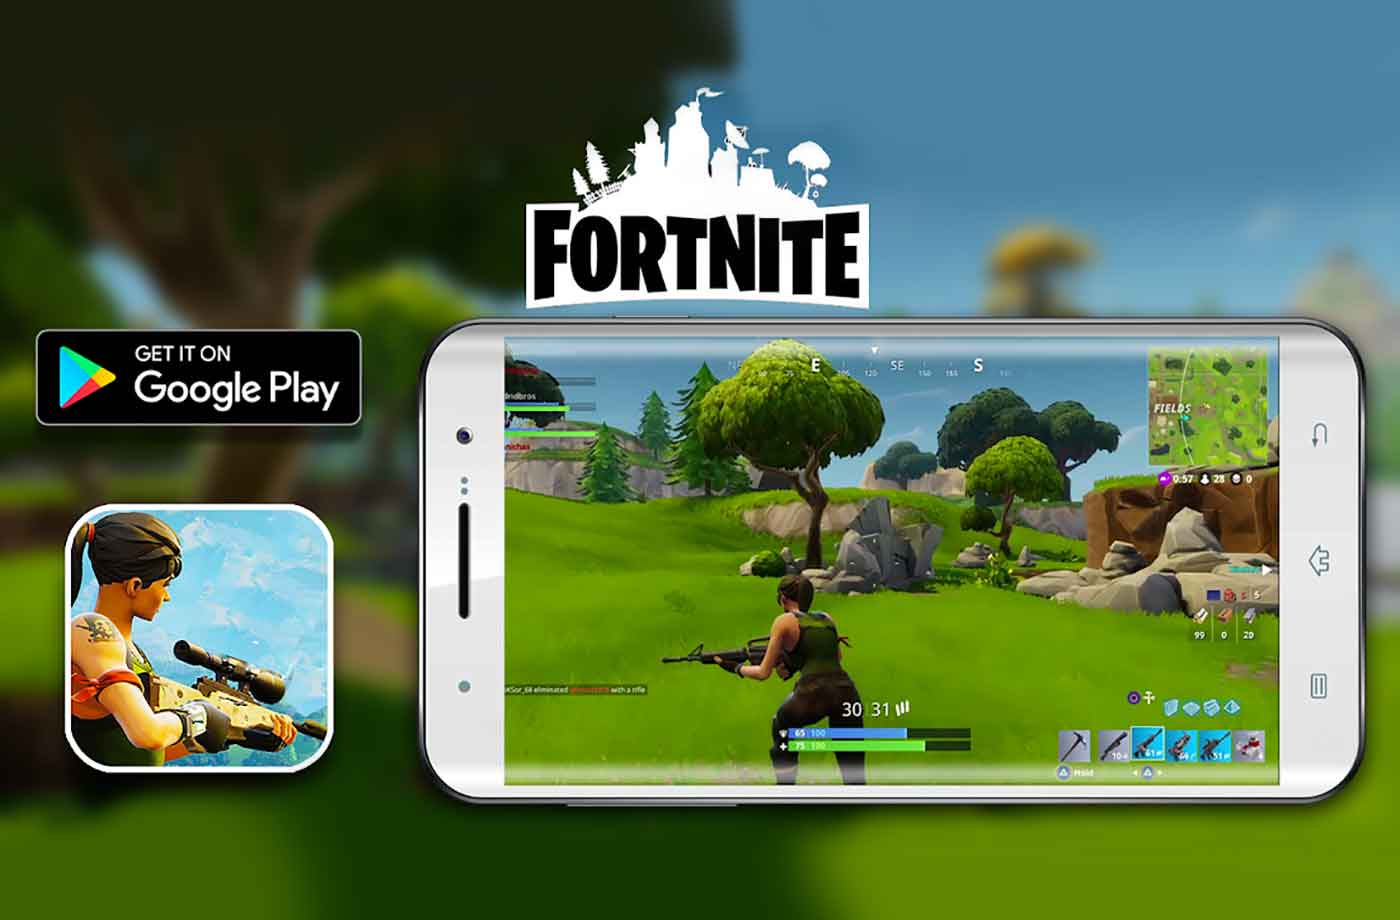 Fortnite Mobile Android Release Apk And Game Details Thenerdmag The most unfortunate thing about this game is that it does not support every android device. fortnite mobile android release apk